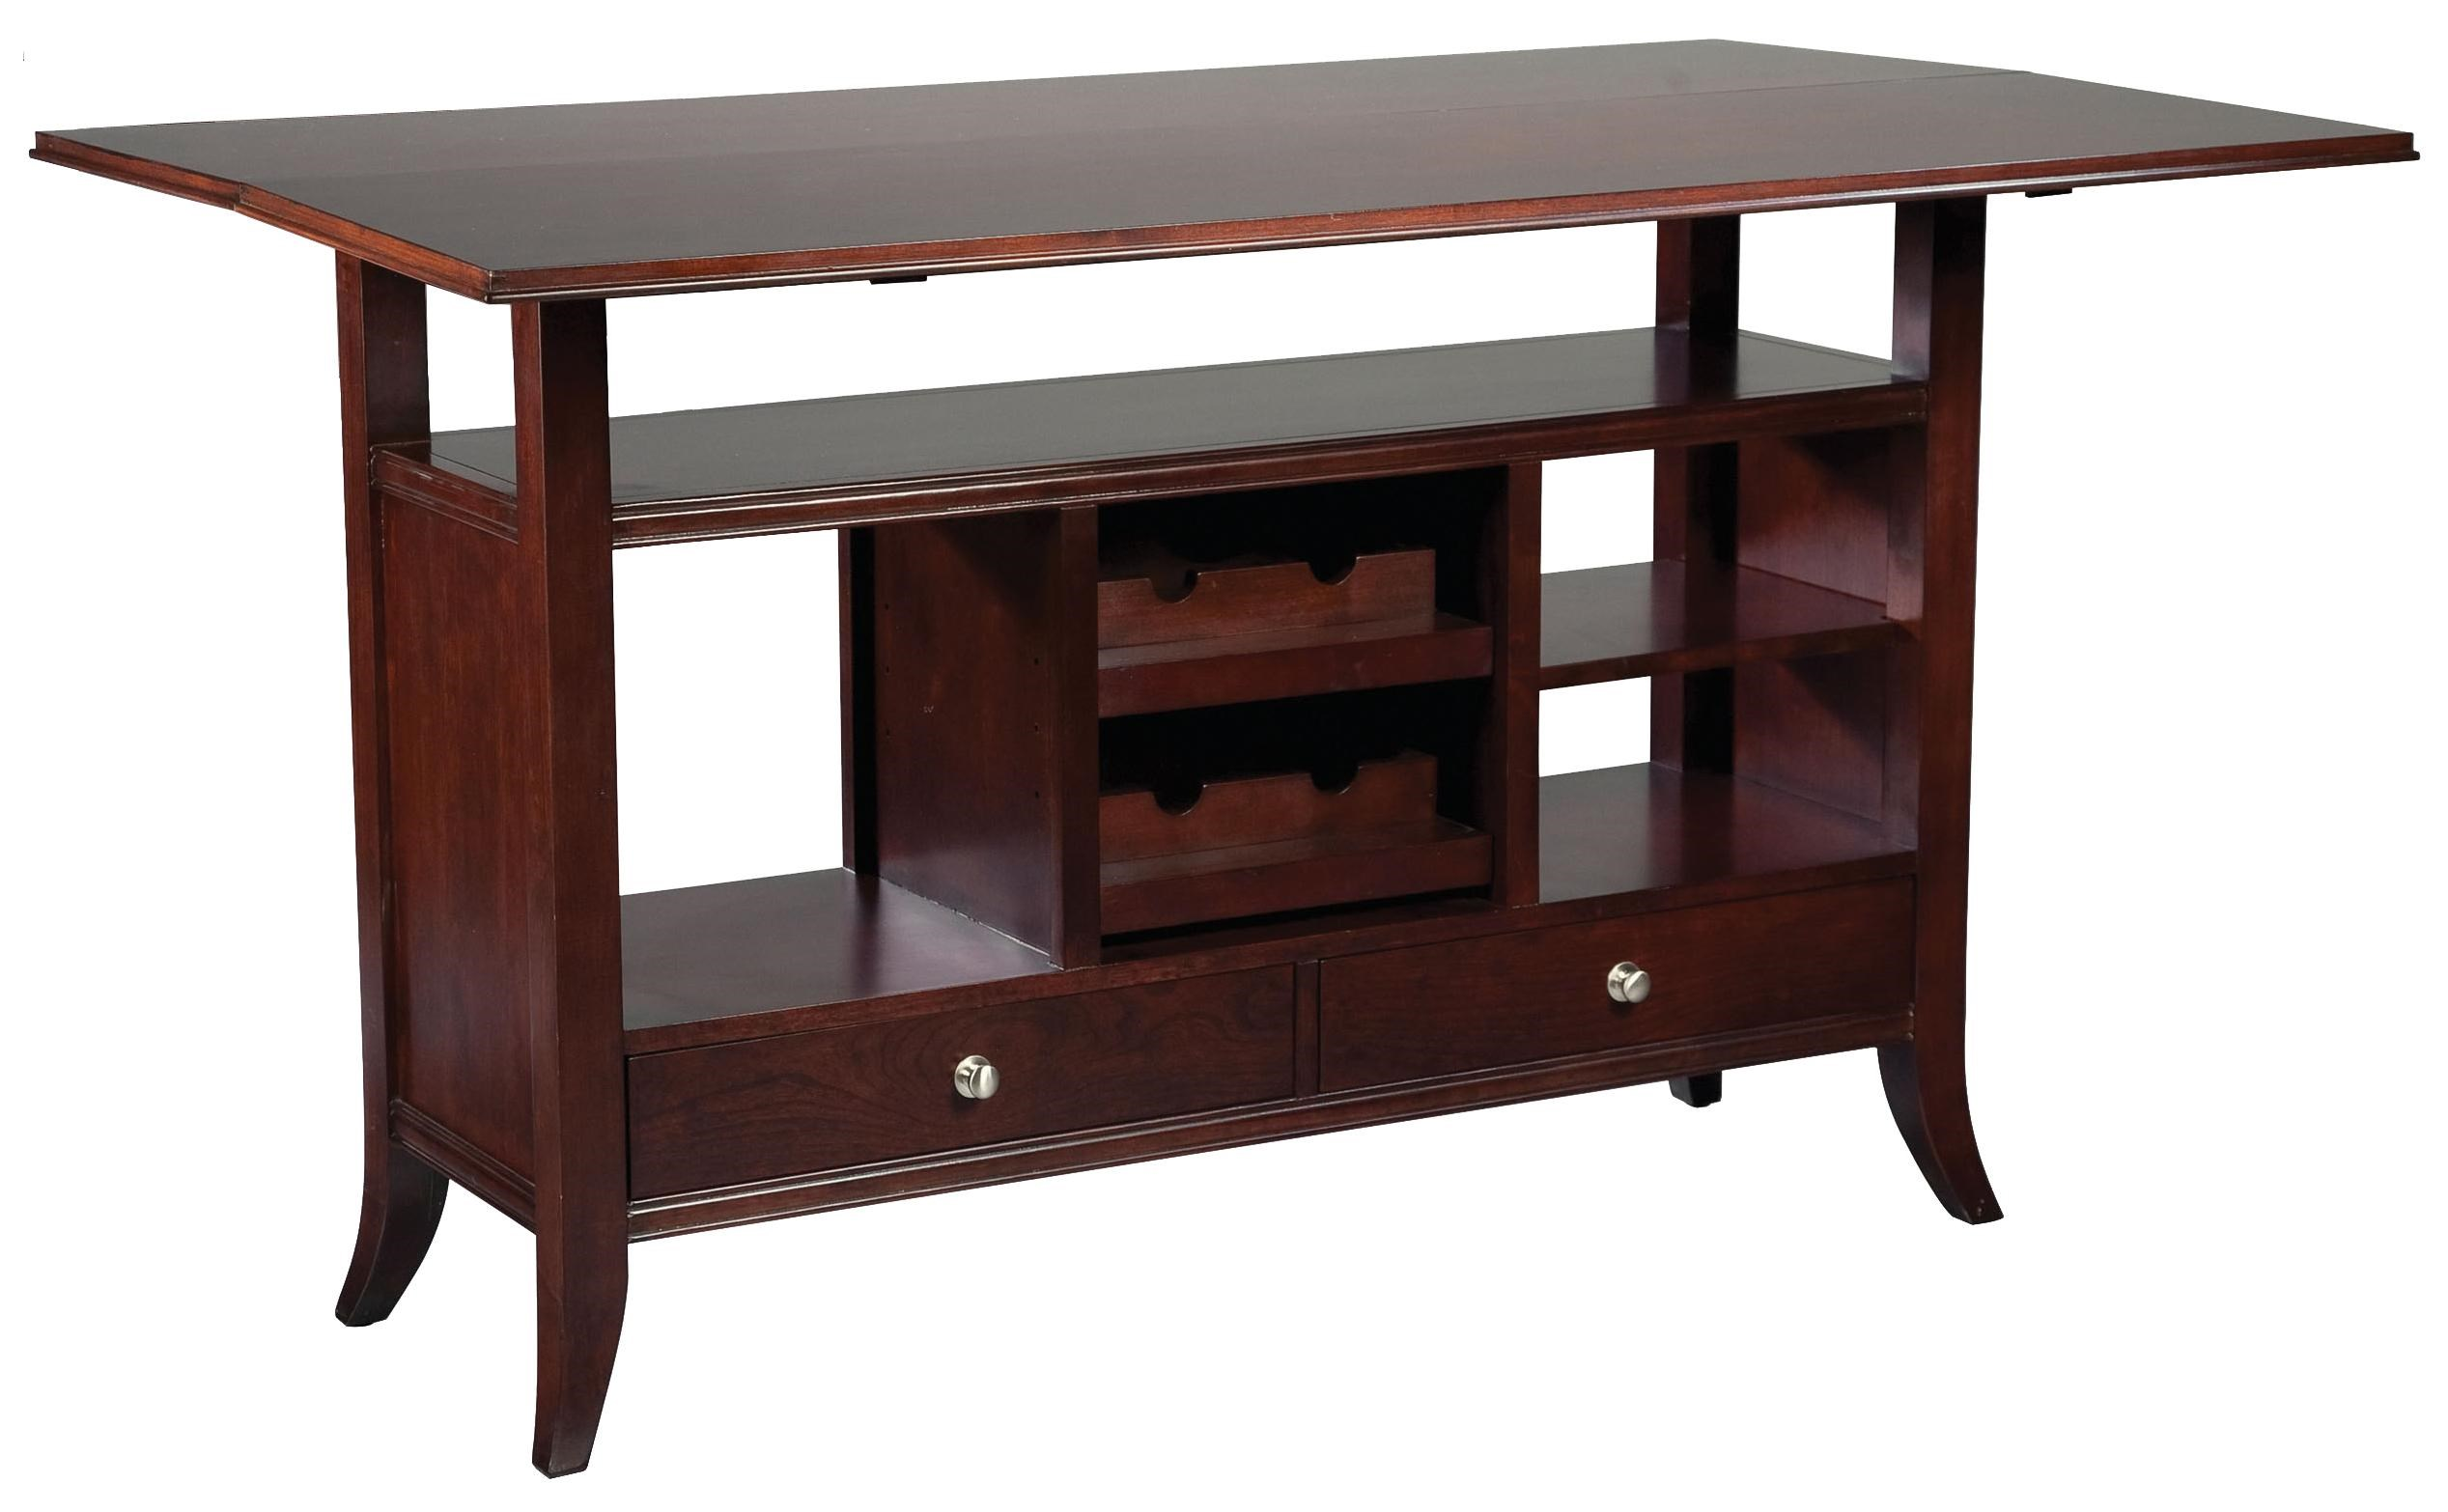 Fairfield Tables Flip Top Wine Rack Console Table With Open Storage Display  Space